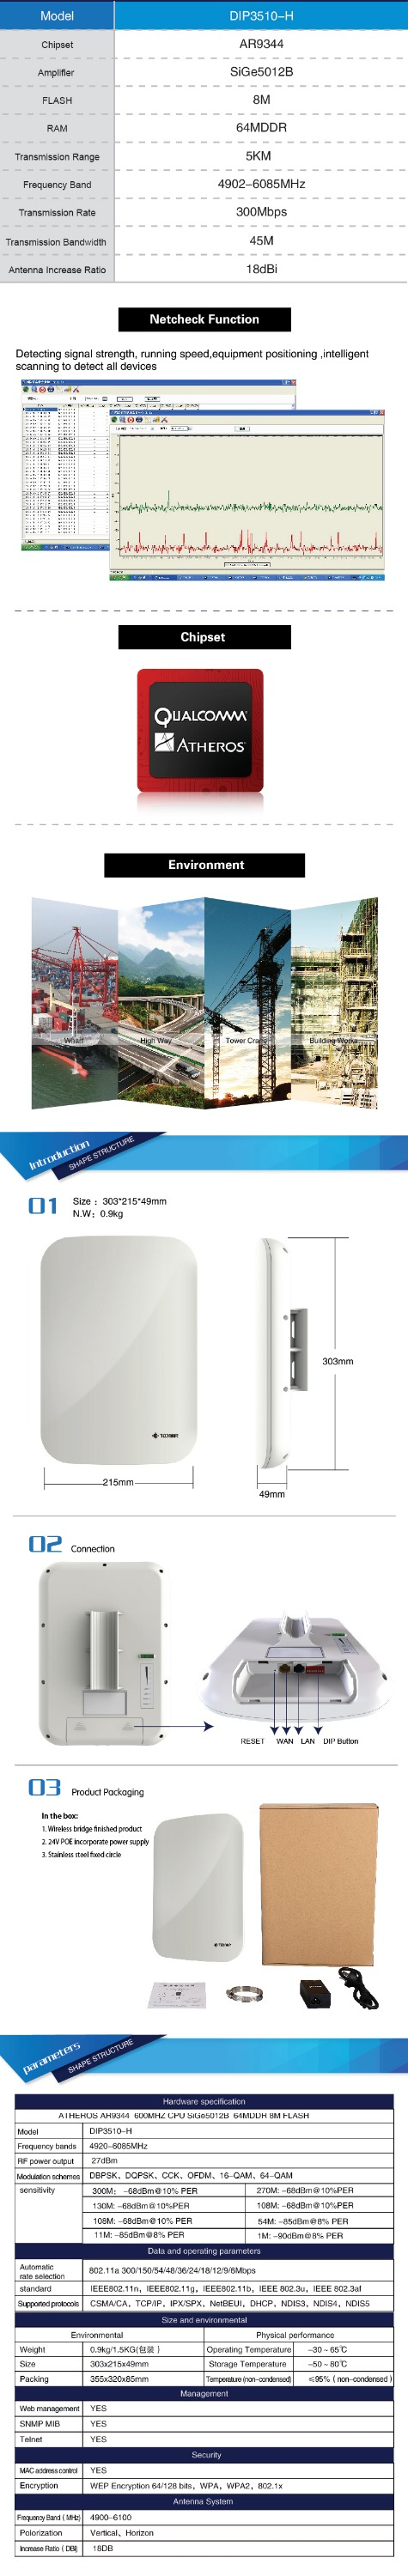 Todaair Wireless Network Equipment AP Router Bridge with DIP Function for IP Camera Security Surveillance Monitoring Engineering